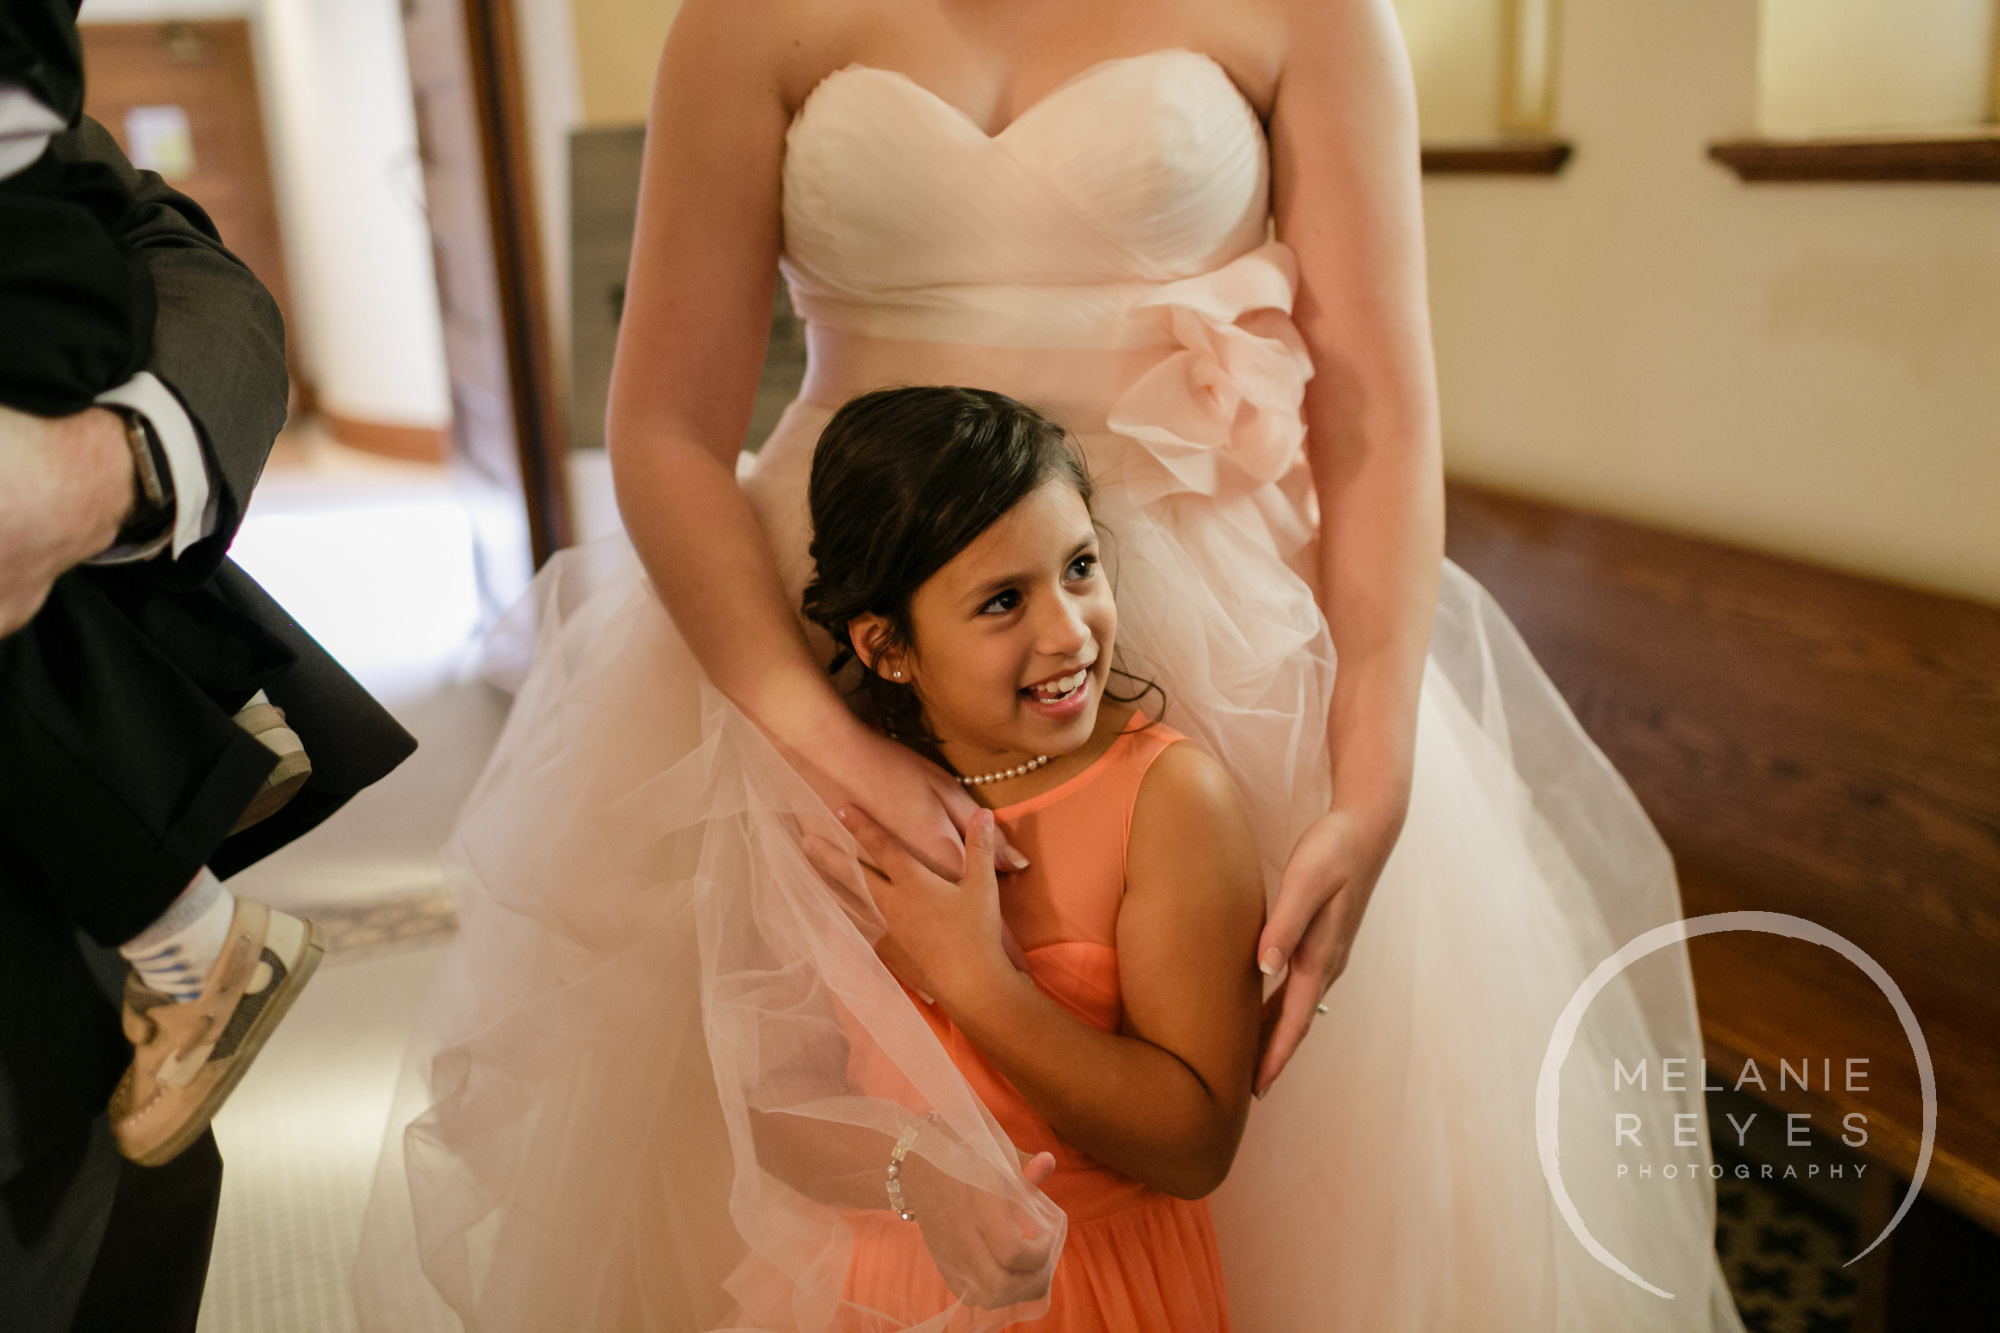 wedding_photographer_captured_moments_melaniereyes_140.jpg